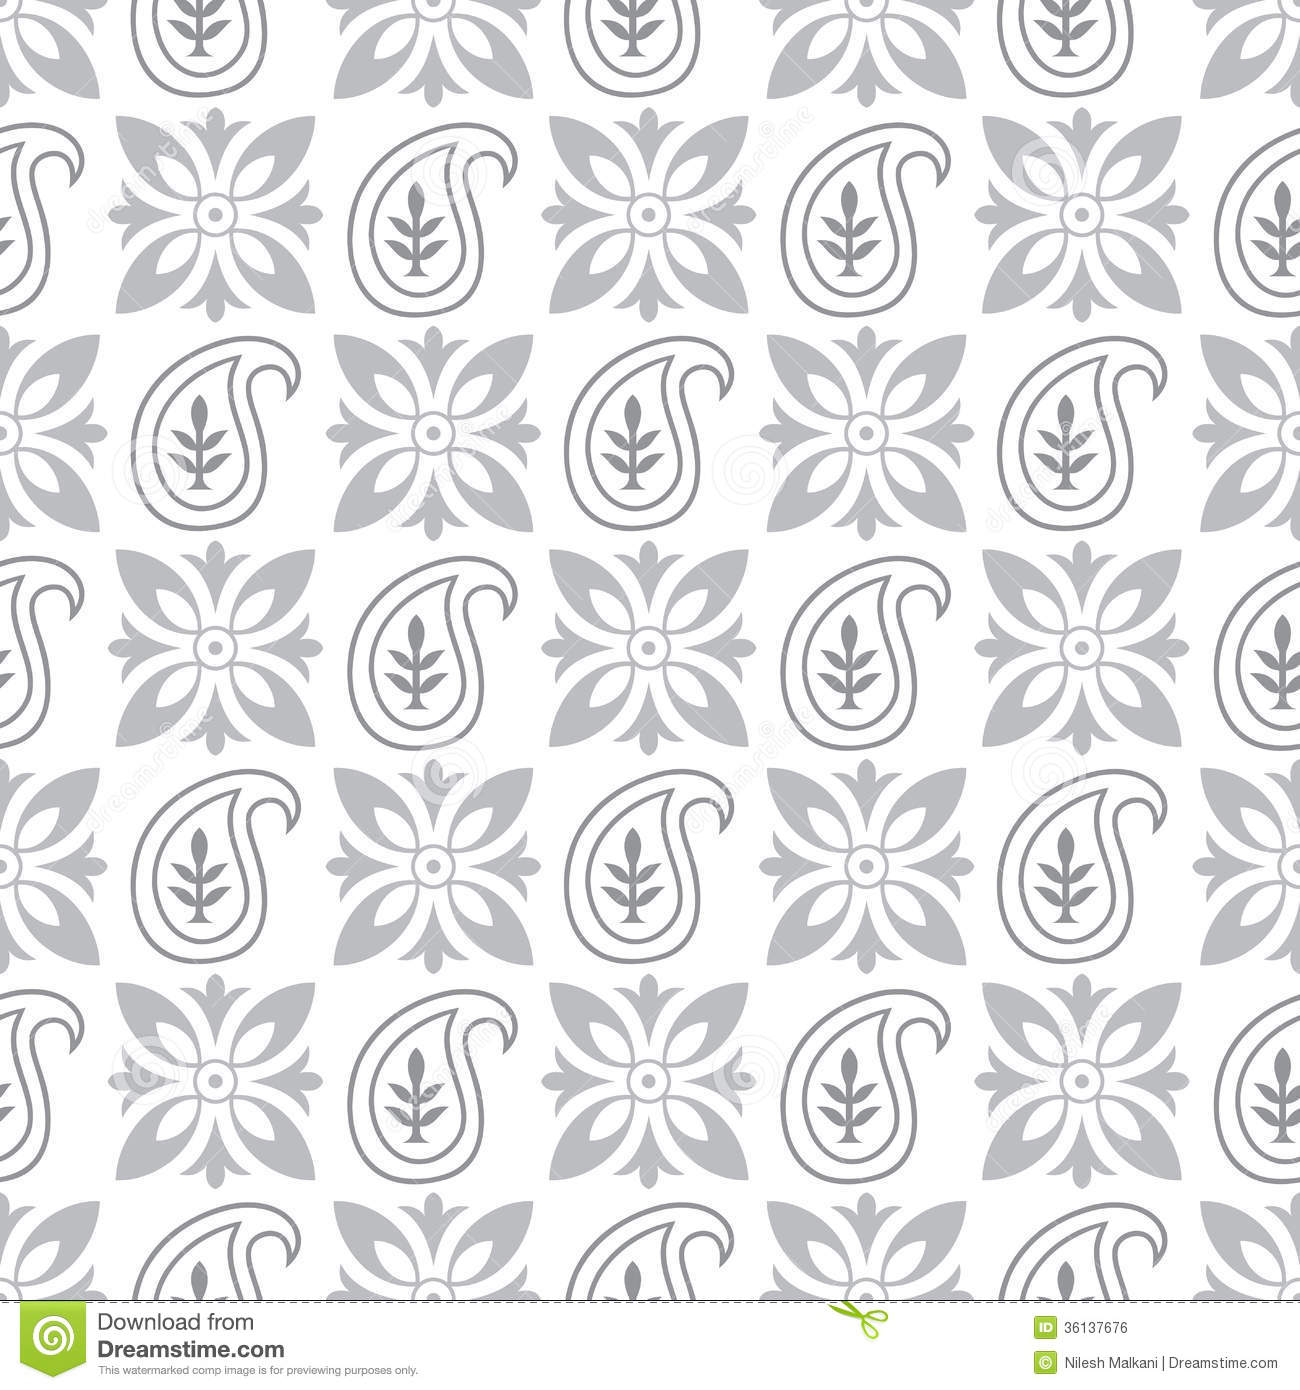 Black And Silver Floral Wallpaper Seamless Paisley Pattern Stock Vector Image Of Repeat